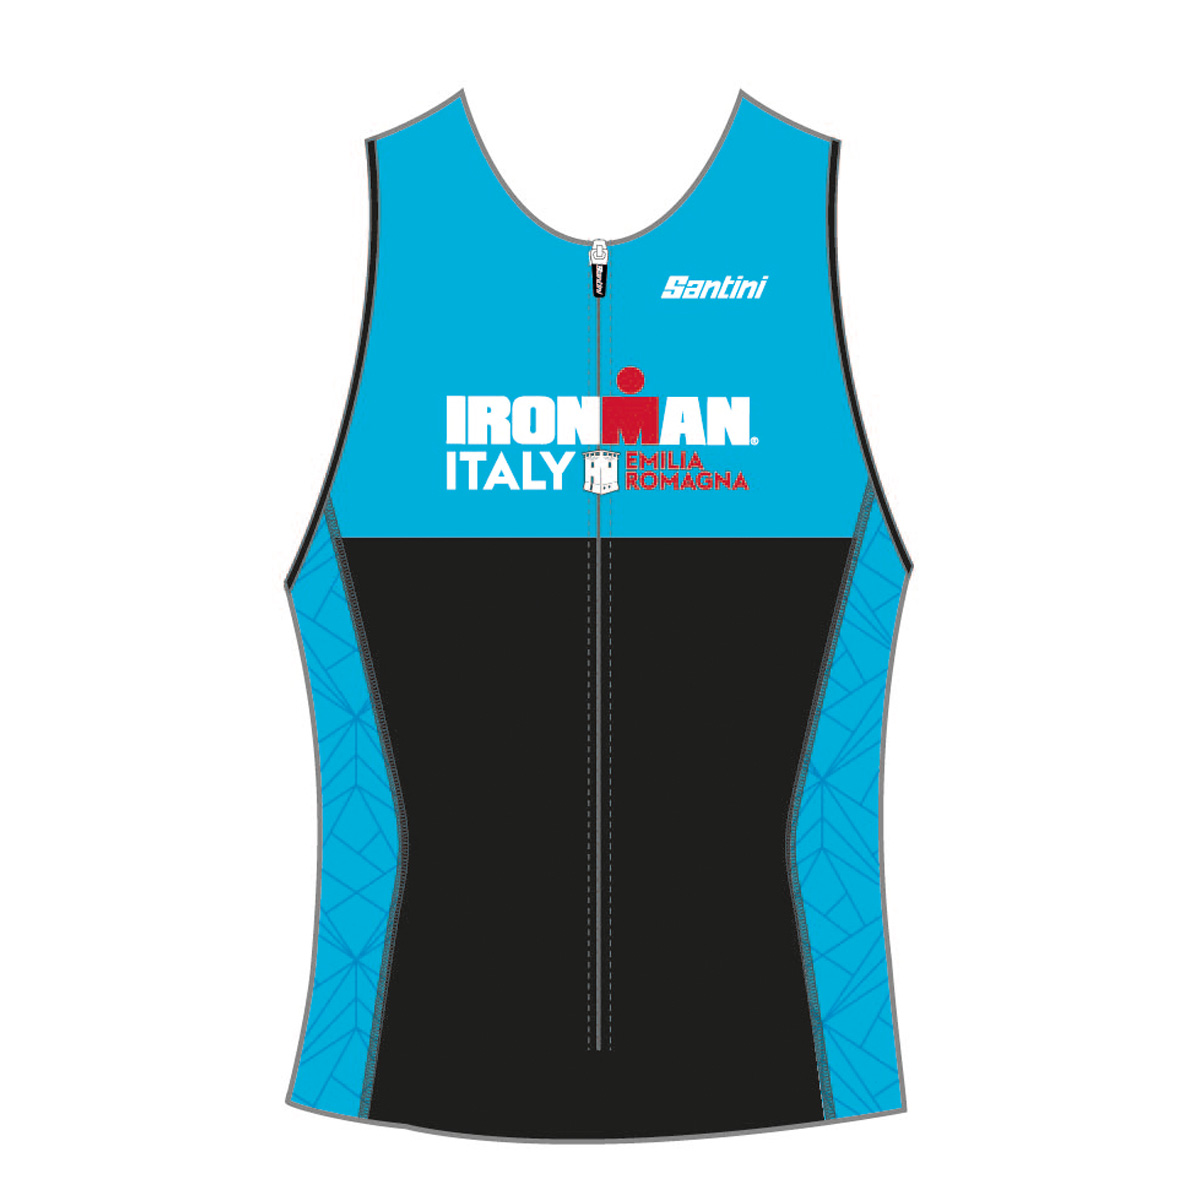 IRONMAN ITALY EMILIA-ROMAGNA 2019 WOMEN'S NAME TRI TOP